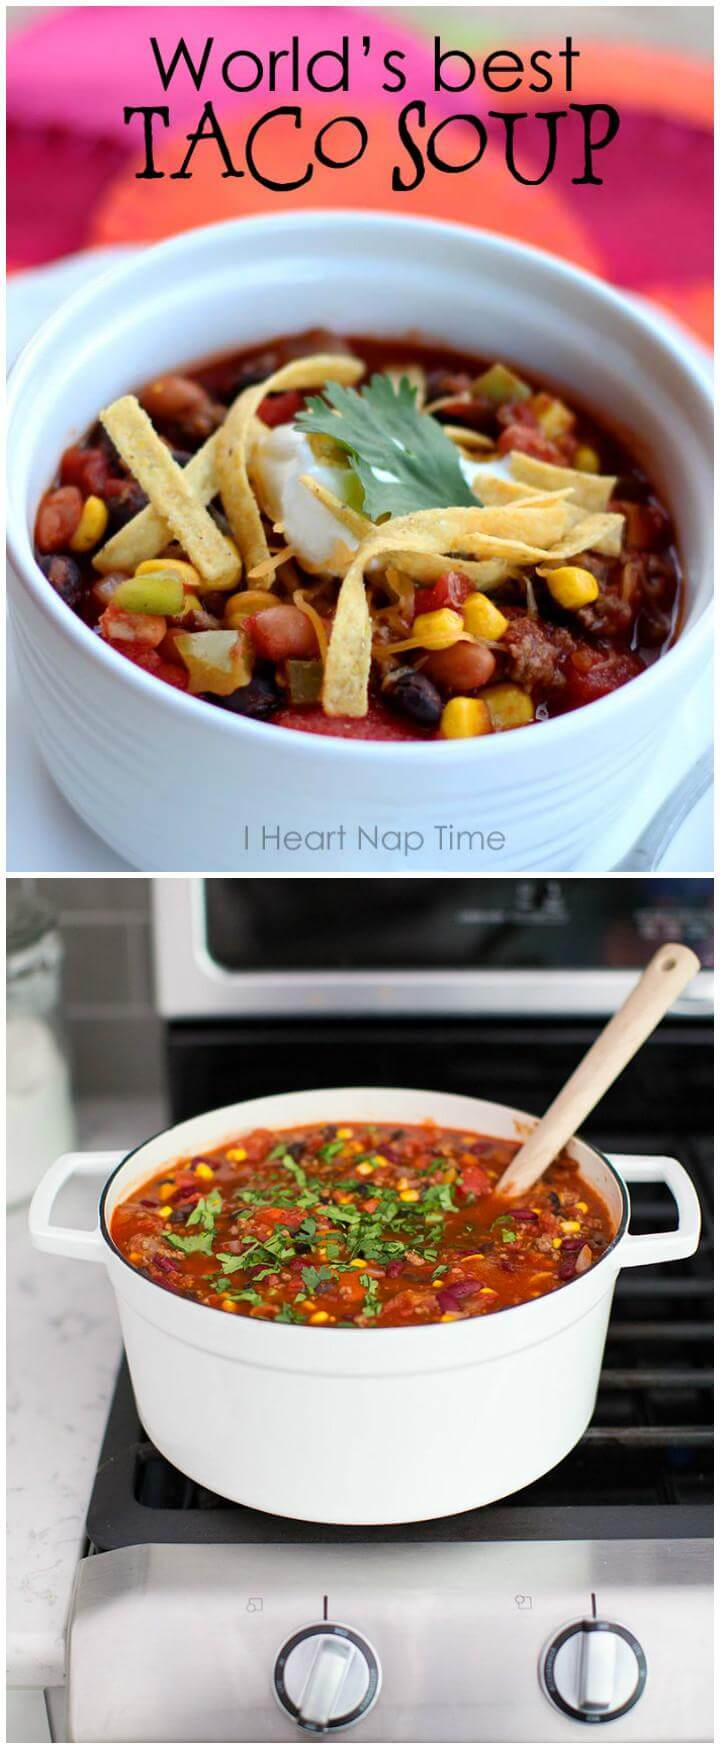 easy and world's best taco soup recipes